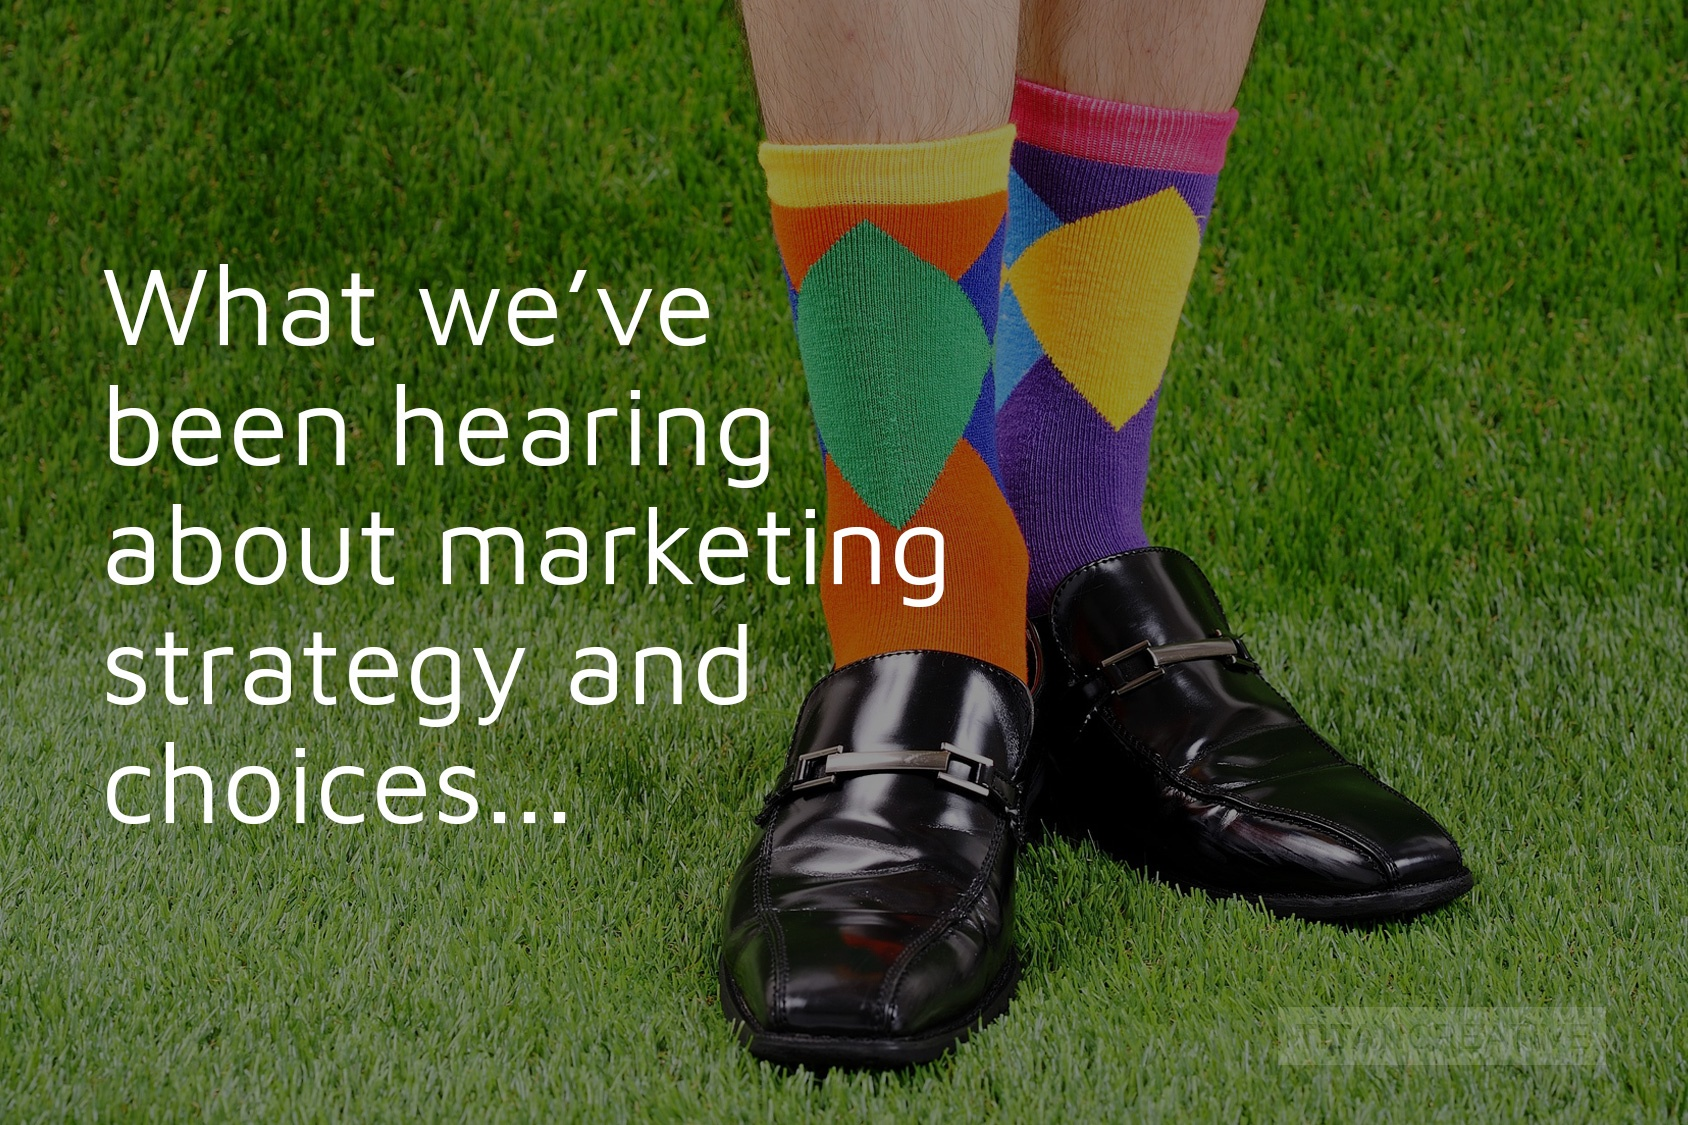 What we've been hearing about marketing strategy and choices...